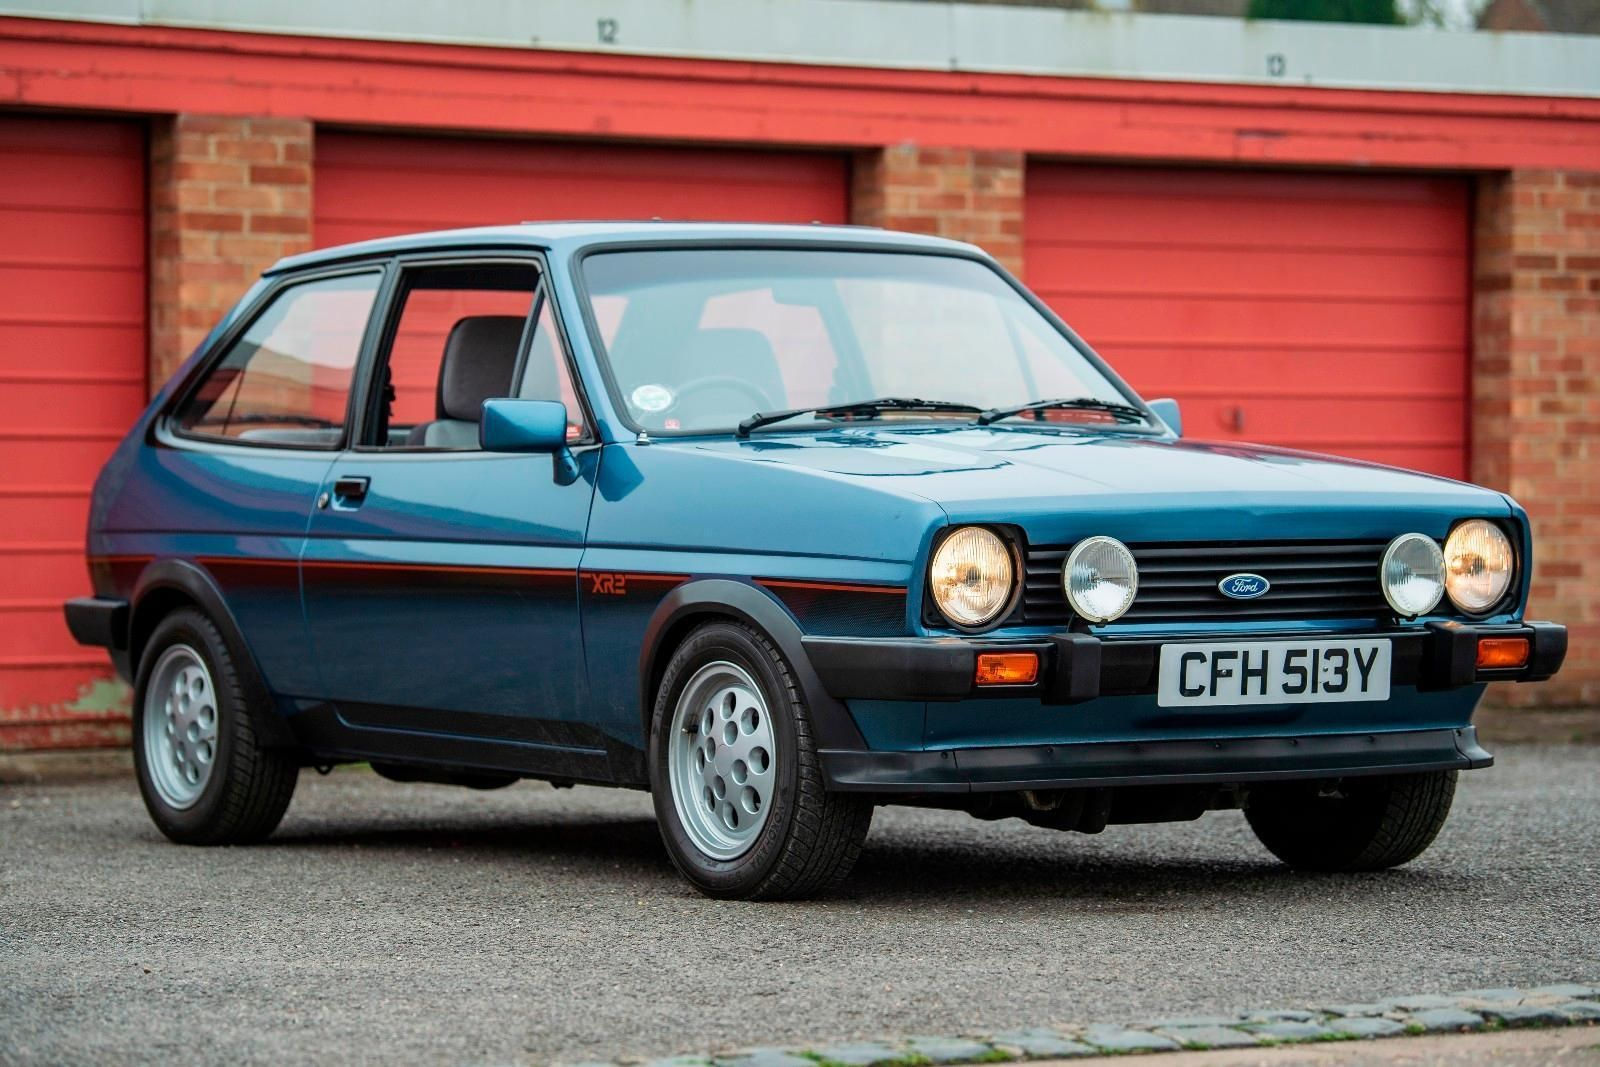 Black Mki Ford Fiesta Xr2 Ford Fiesta Ford Dream Cars